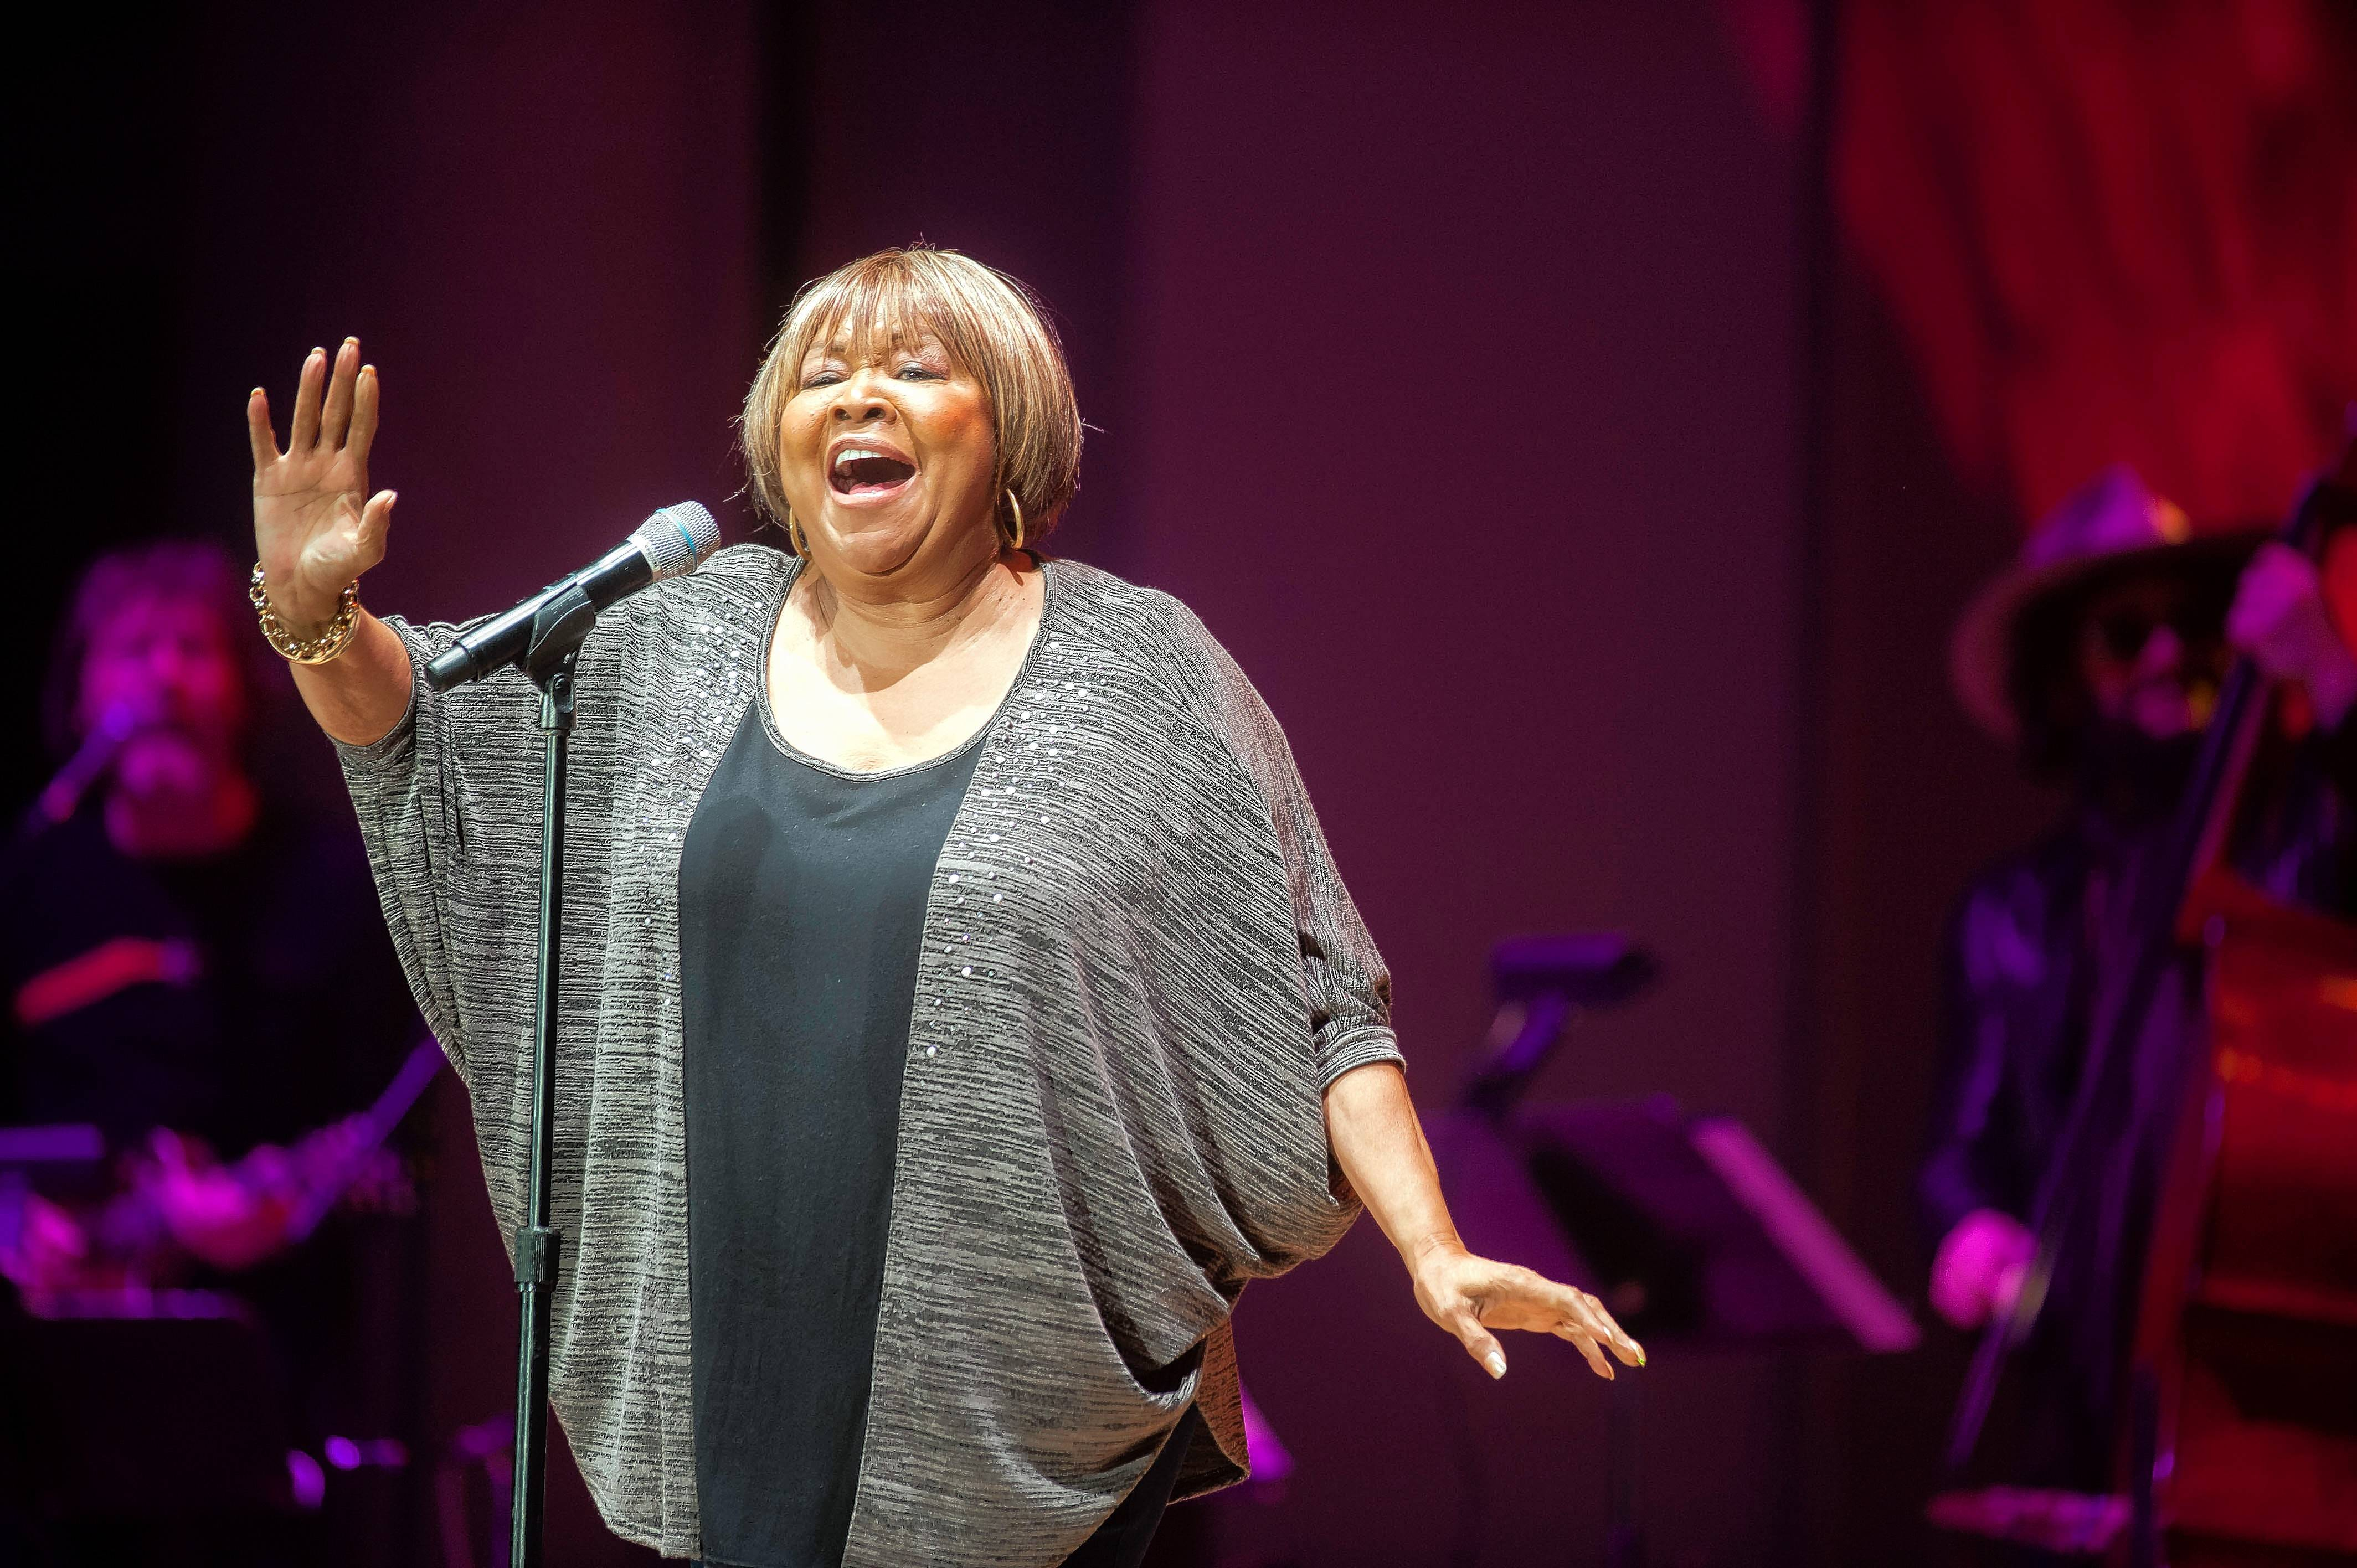 Mavis Staples shares the bill with Bob Dylan at the Ravinia Festival in Highland Park on Friday, June 24.